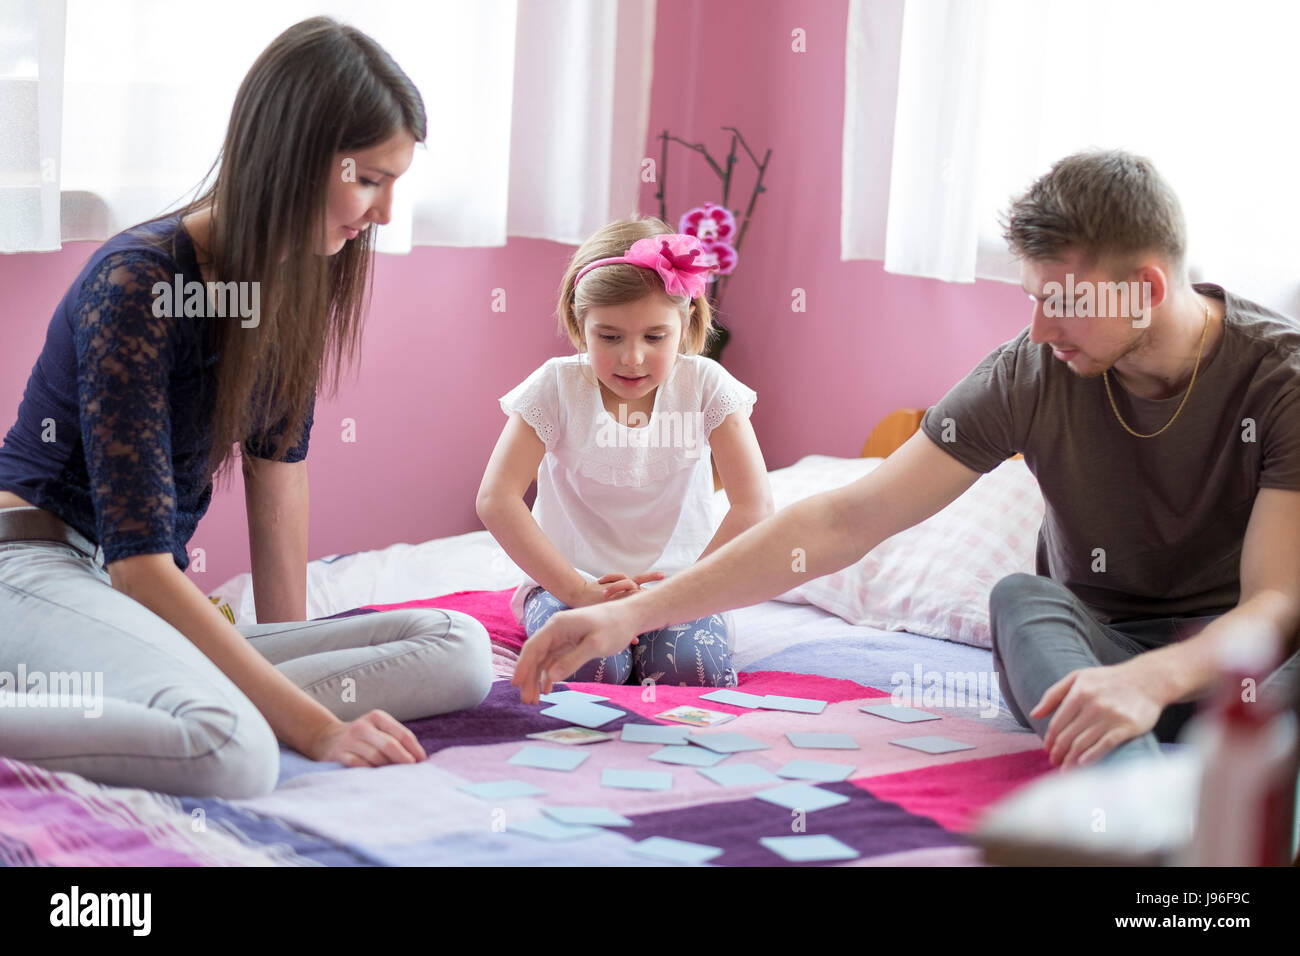 Mom and daughter playing in bed. Family fun concept Stock Photo